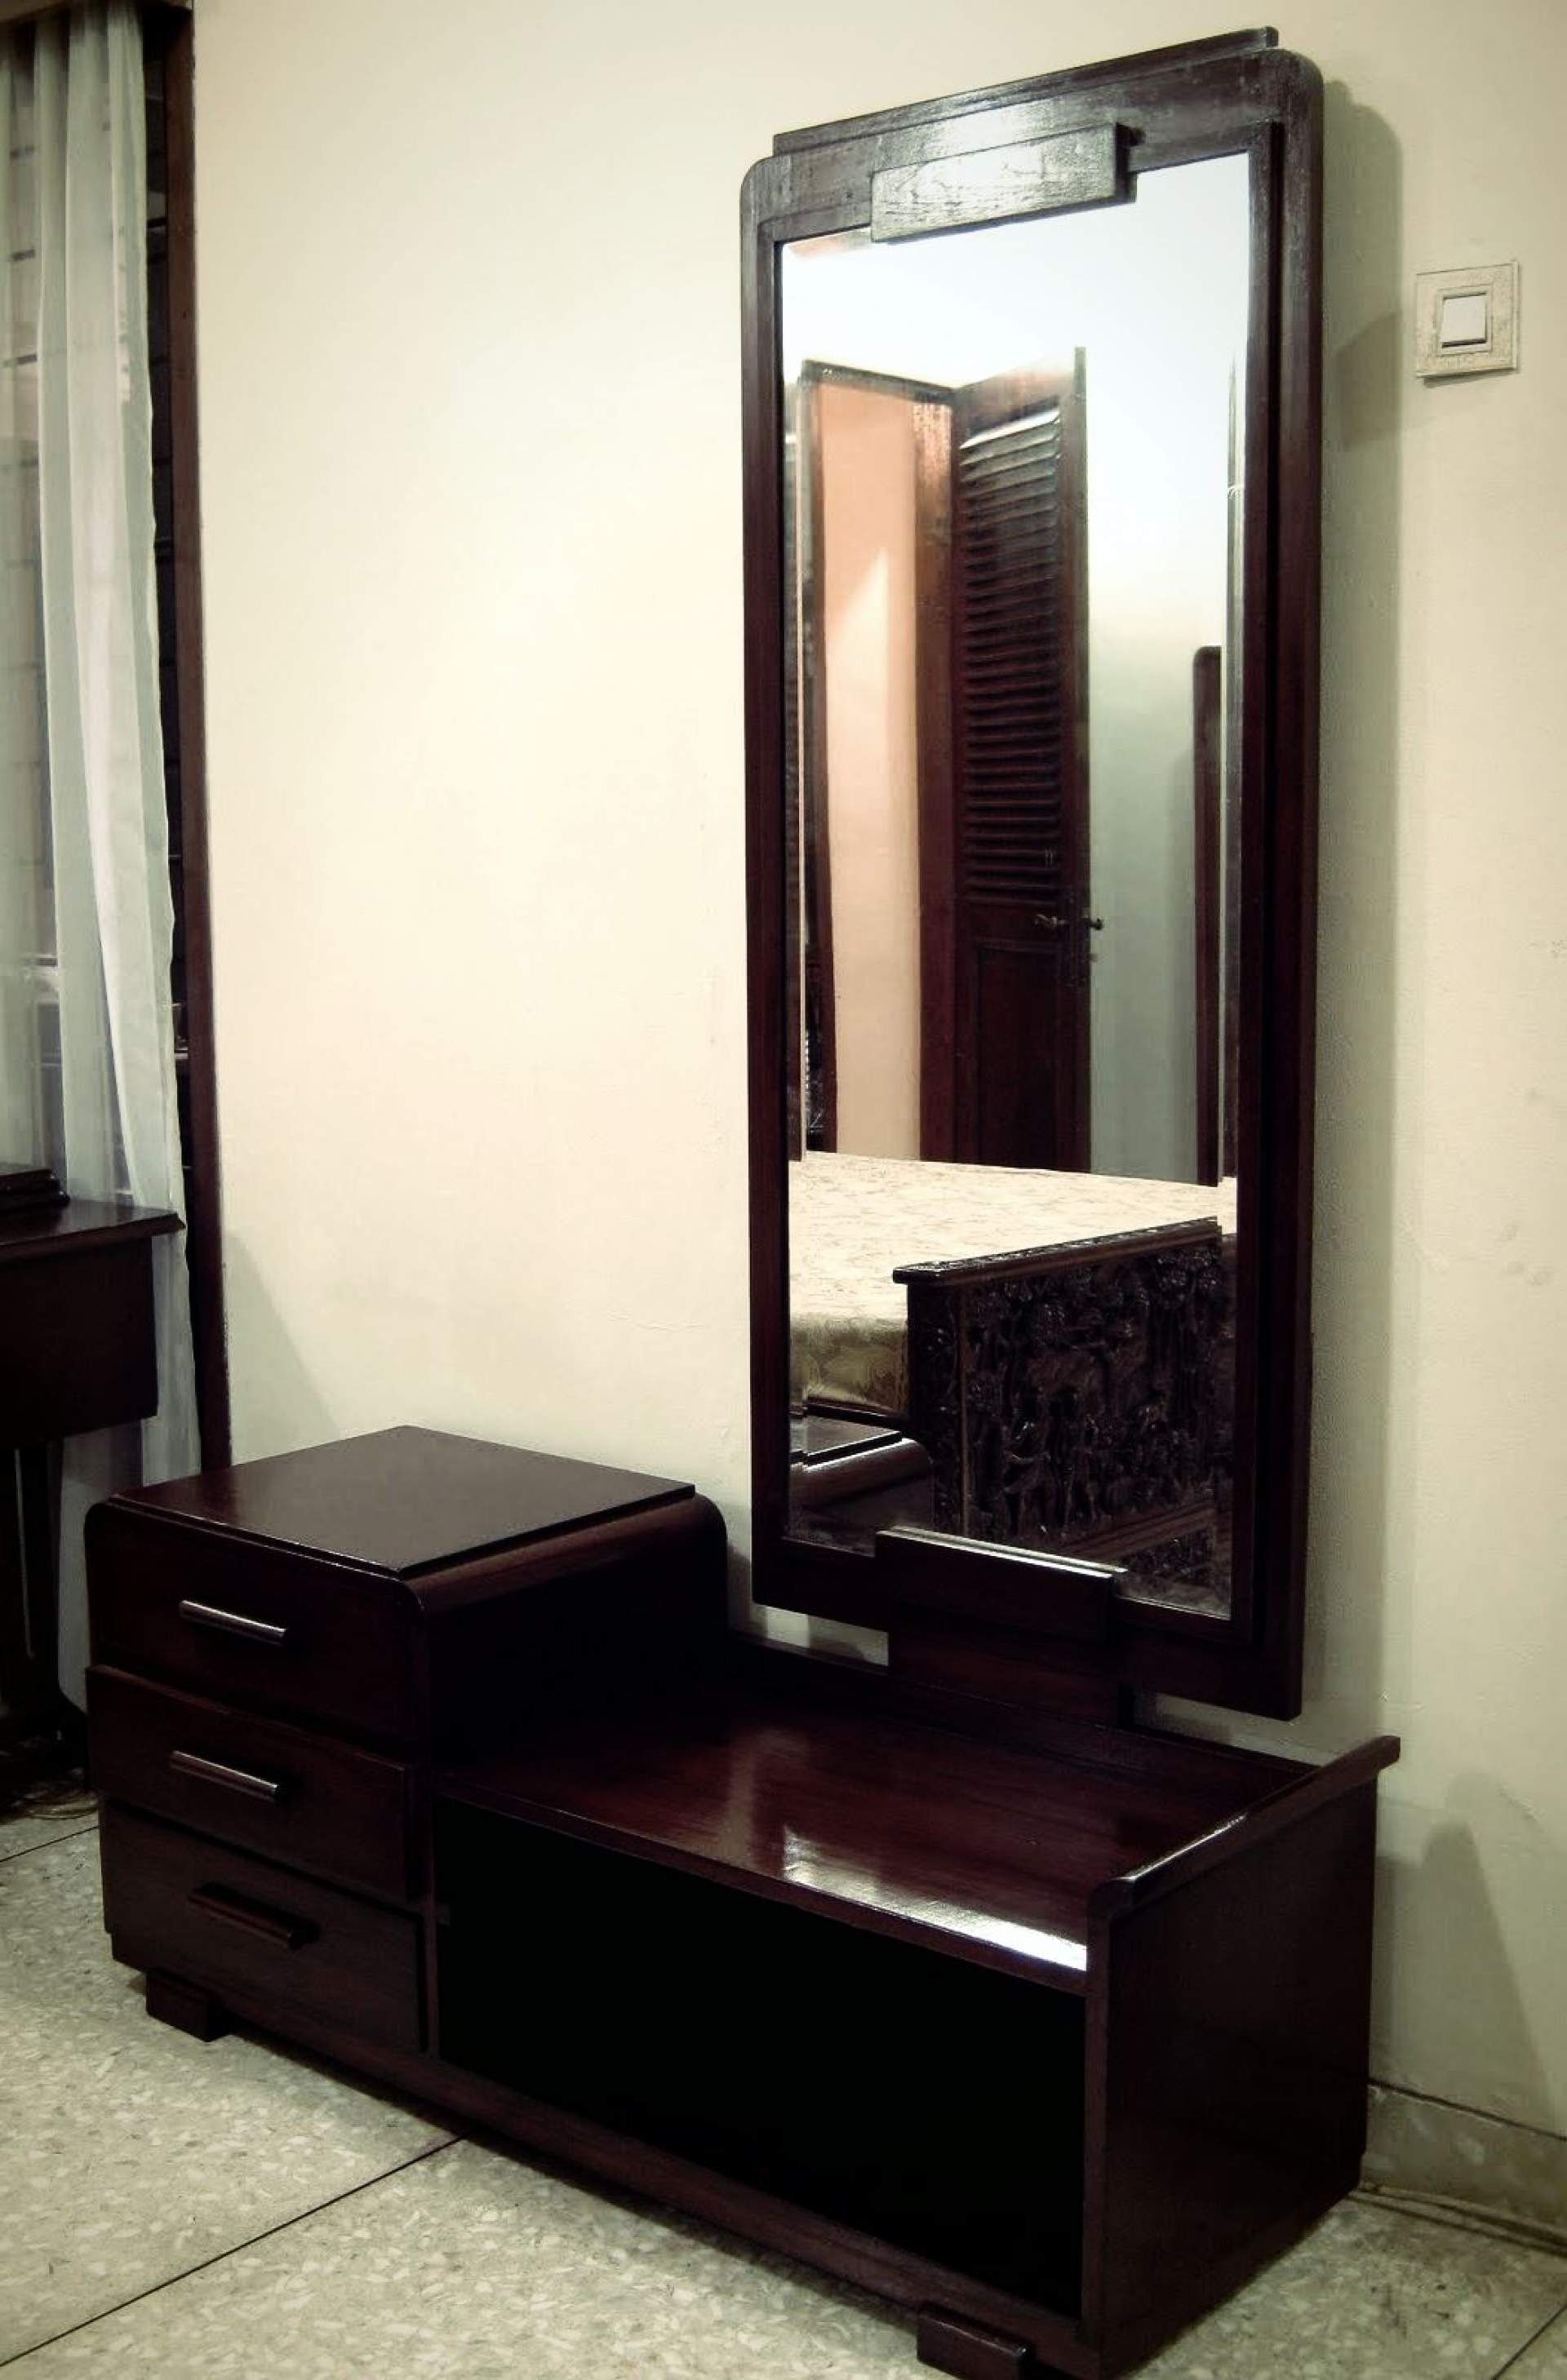 Modern Dressing Table Designs With Full Length Mirror Modern Dressing Table Designs Dressing Table Design Dressing Table Mirror Design